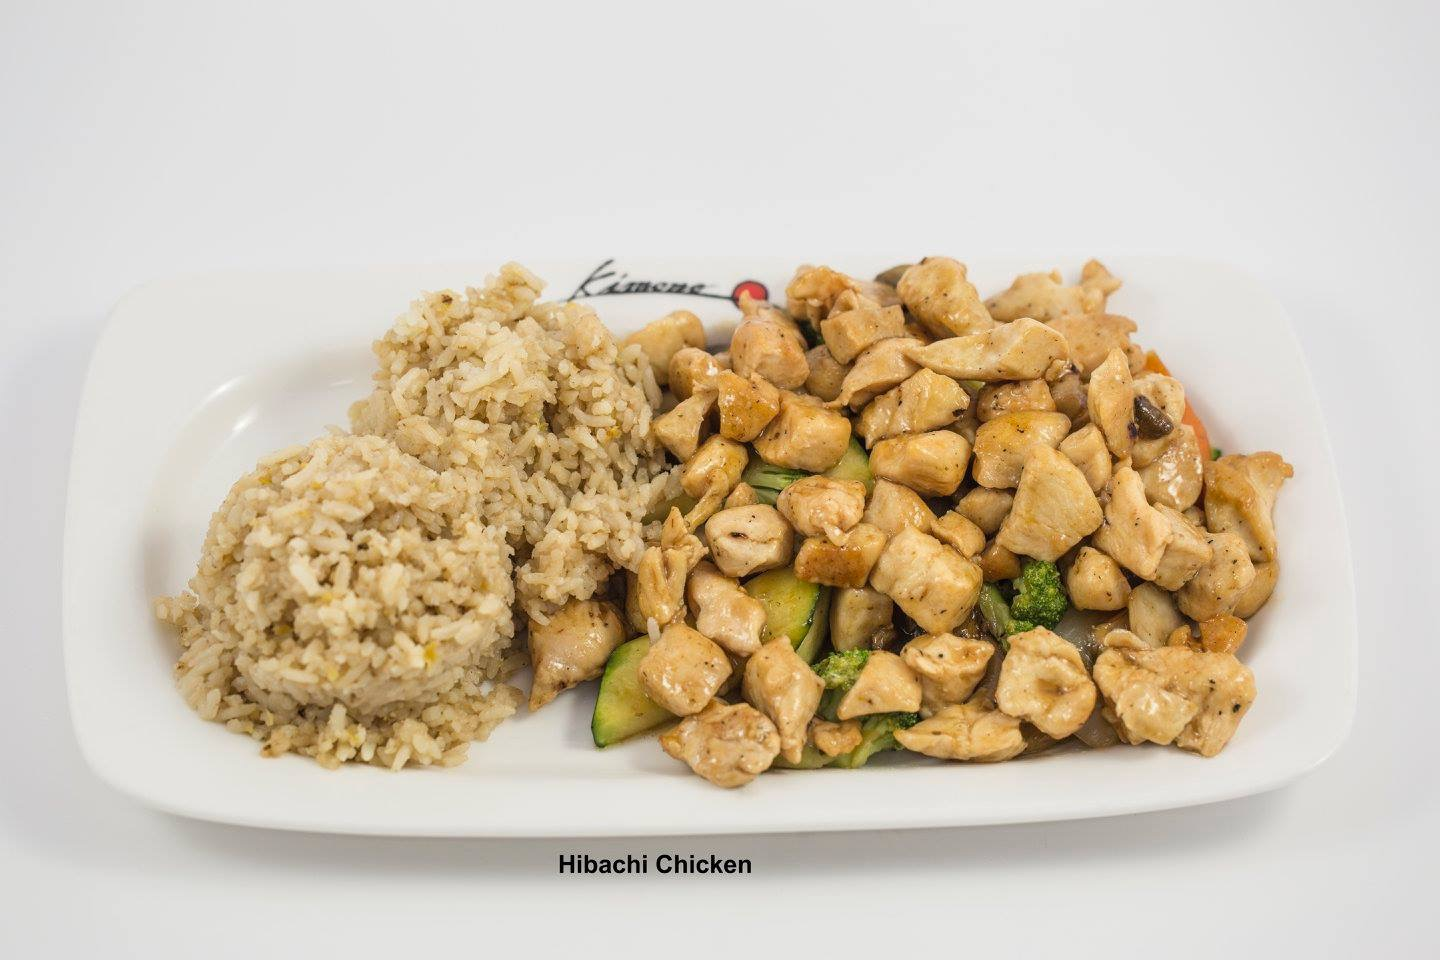 Hibachi Chicken Image